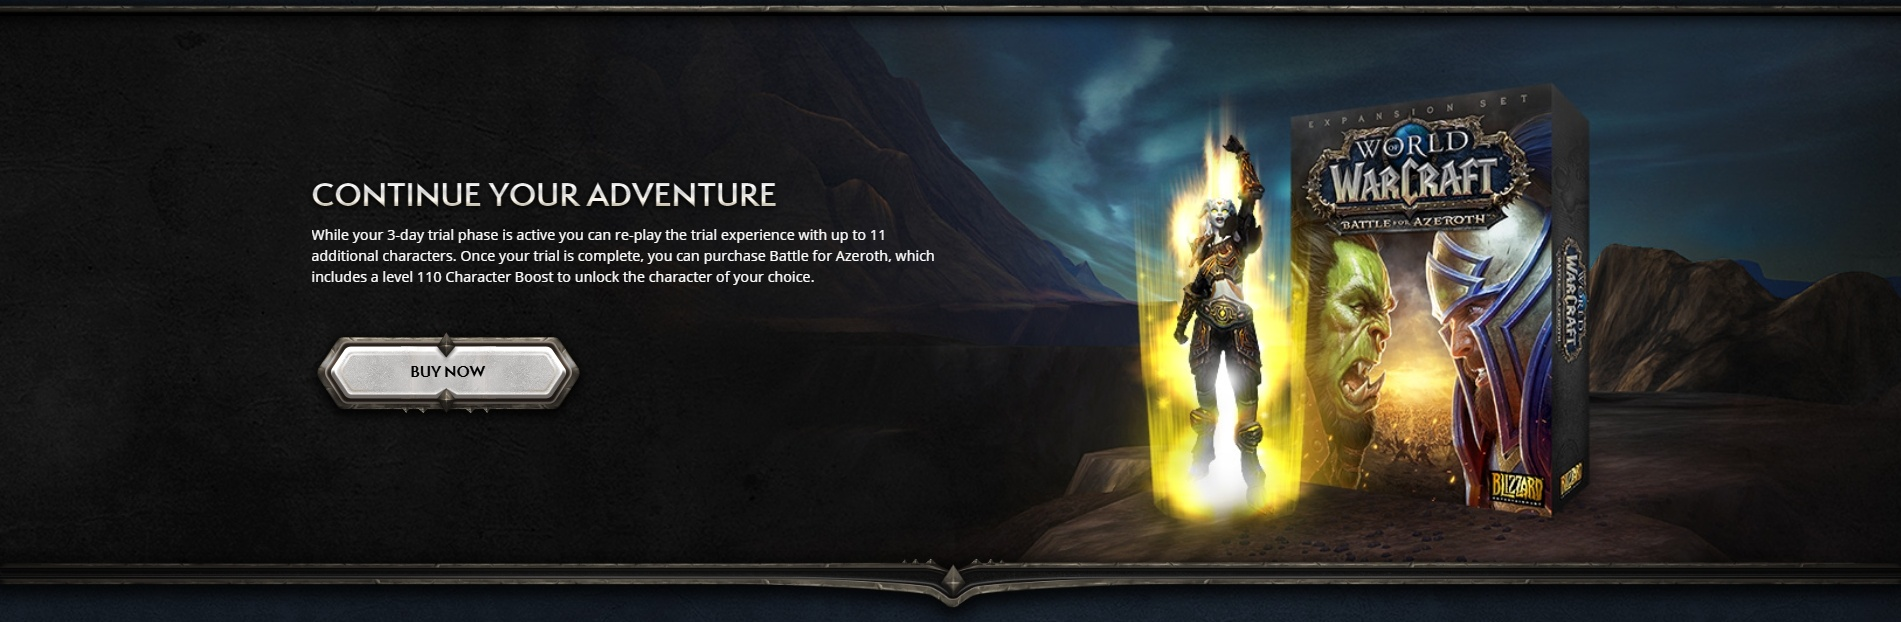 Test Battle for Azeroth for 3 Days - Promotion for Select